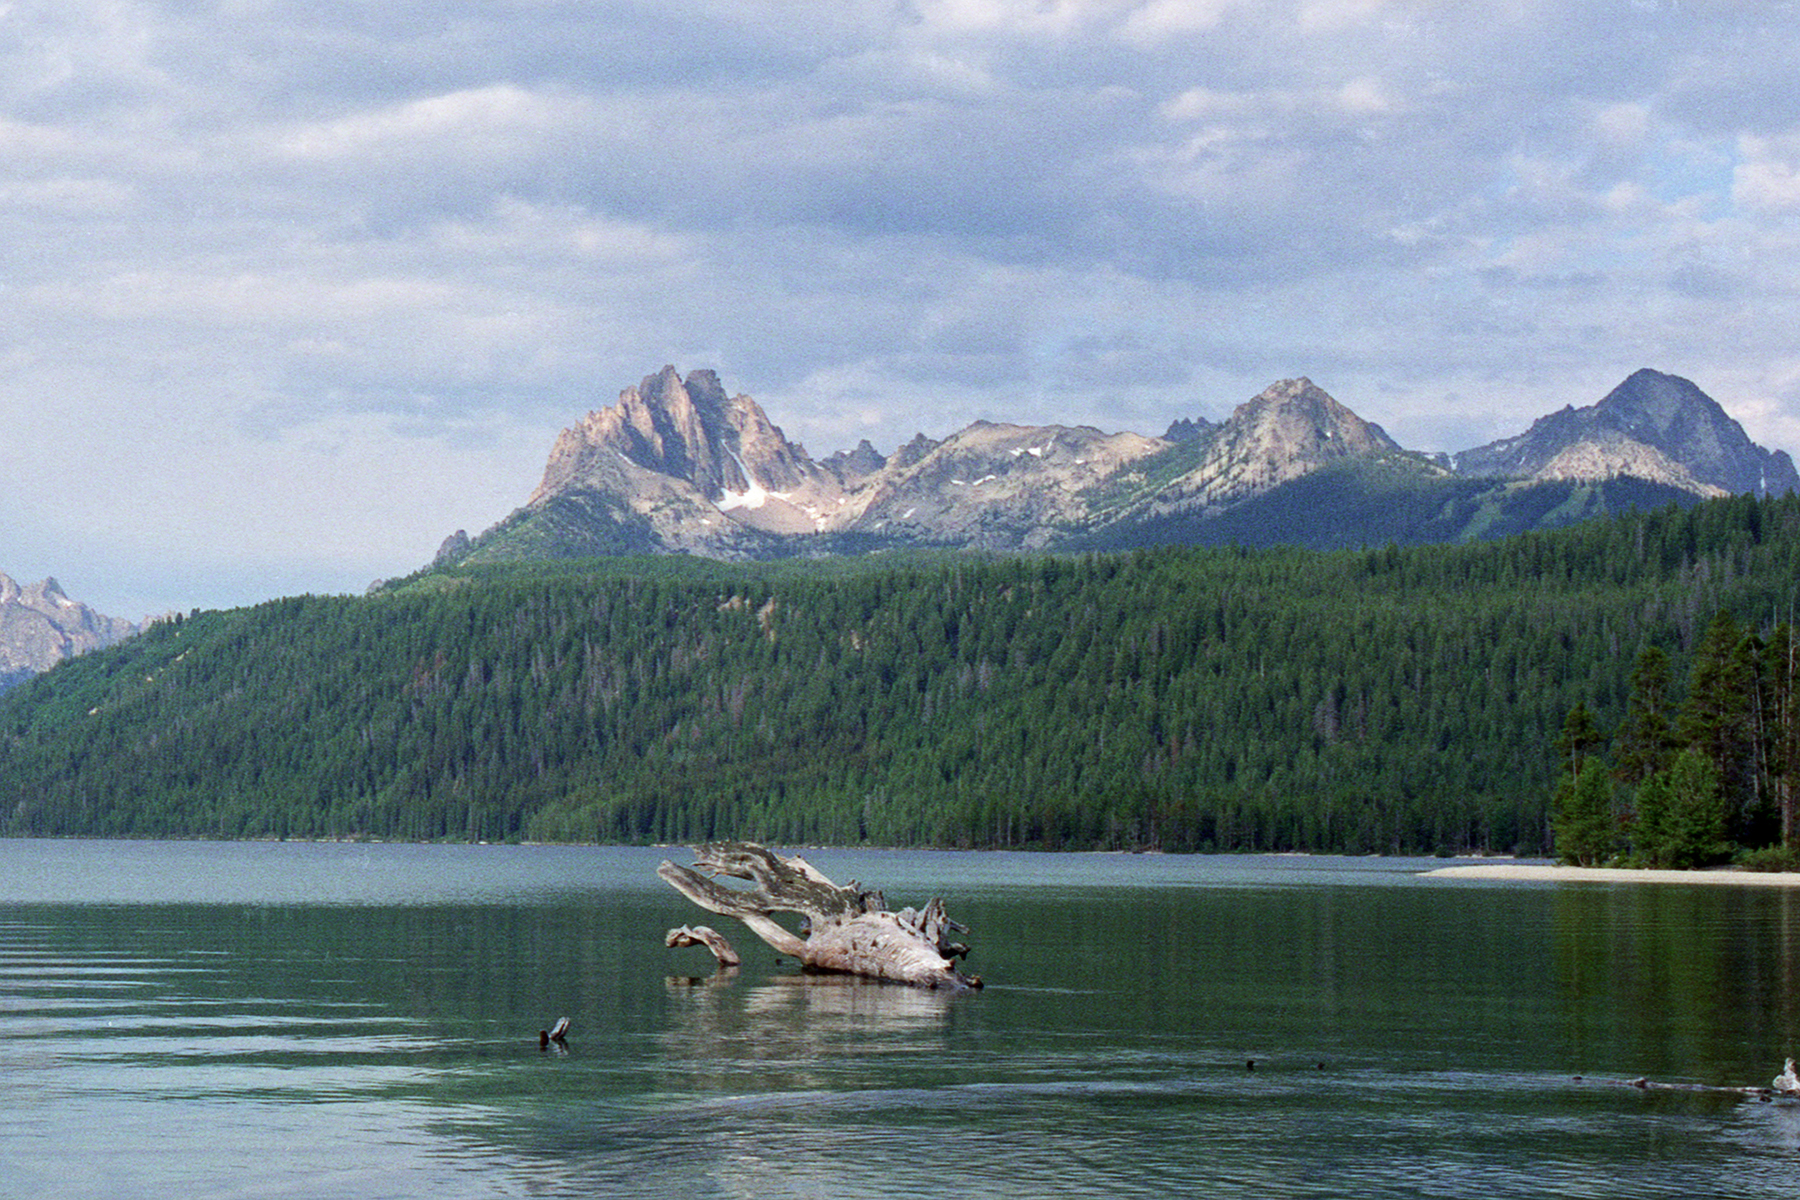 Heyburn Mountain and Redfish Lake, Idaho |   Hasselblad Xpan, Perutz SC100